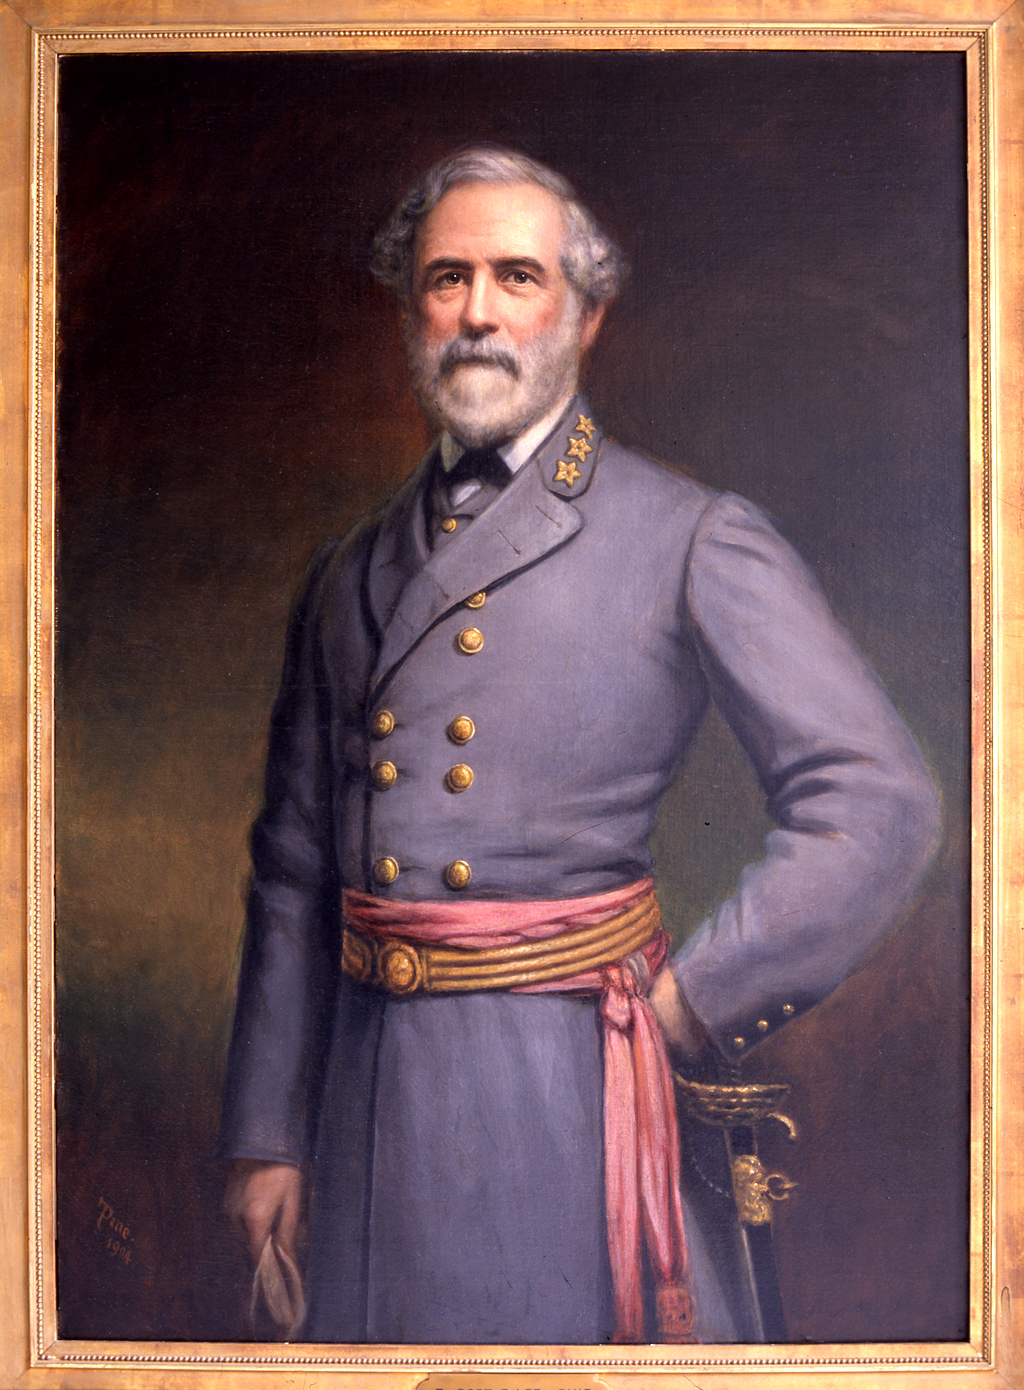 Robert E. Lee, by Theodore Pine